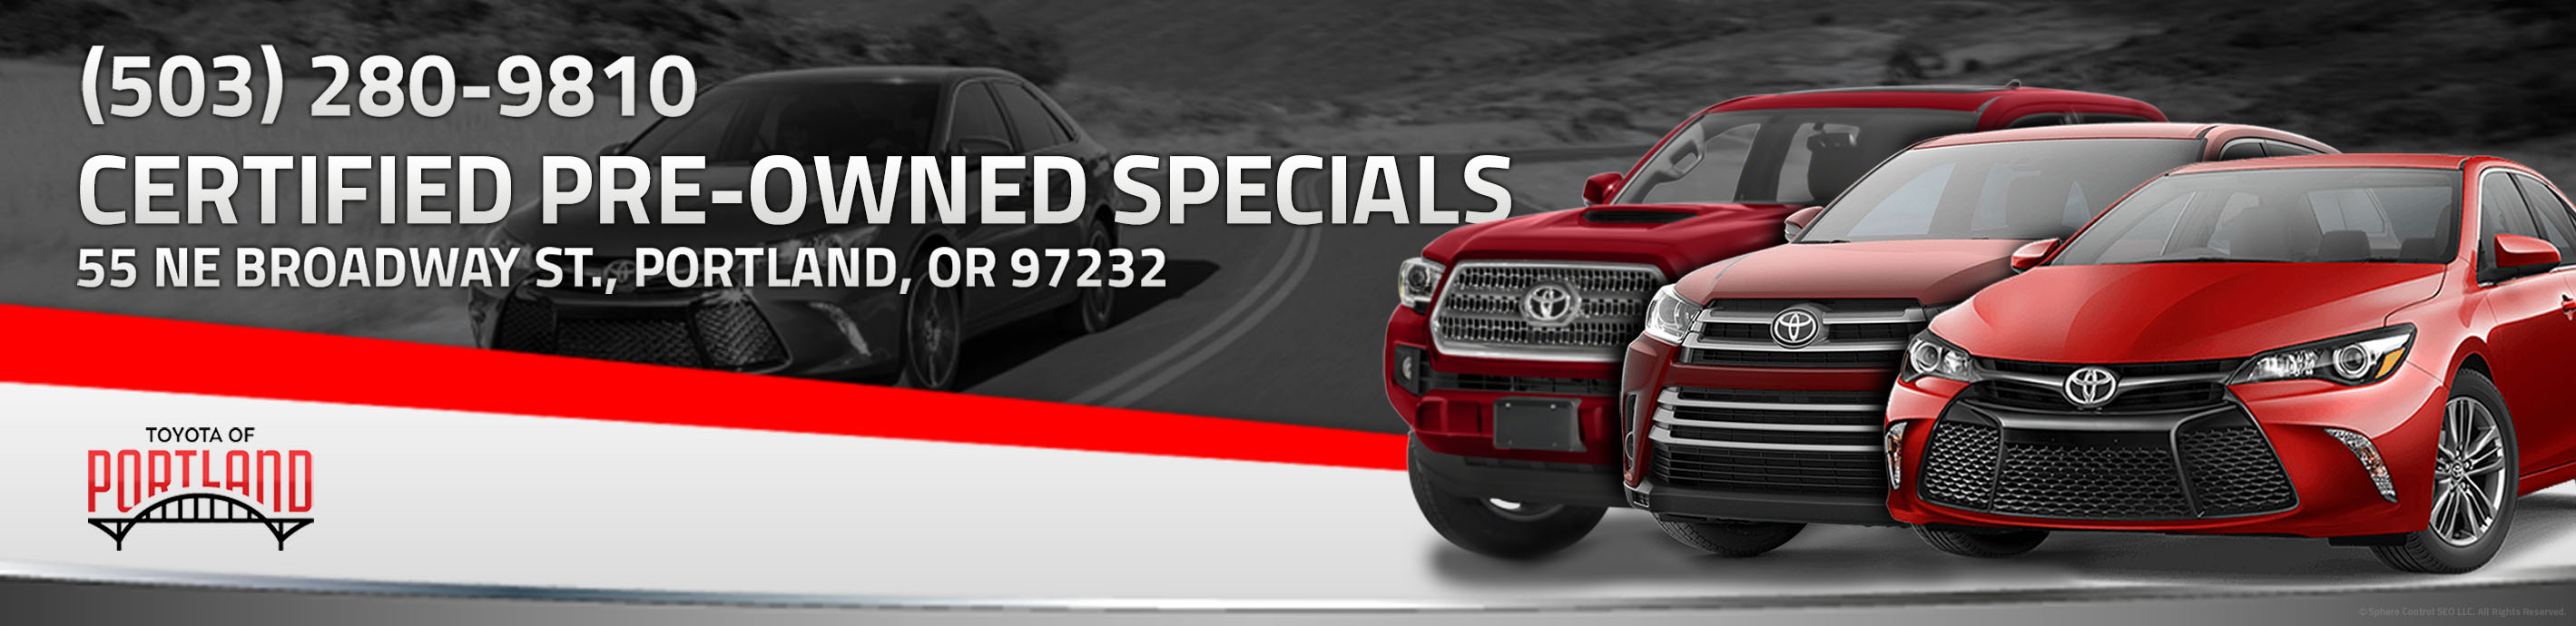 high quality certified used toyota cars suvs trucks for sale in portland or with our best price pre owned camry rav4 prius our lowest payment ta a